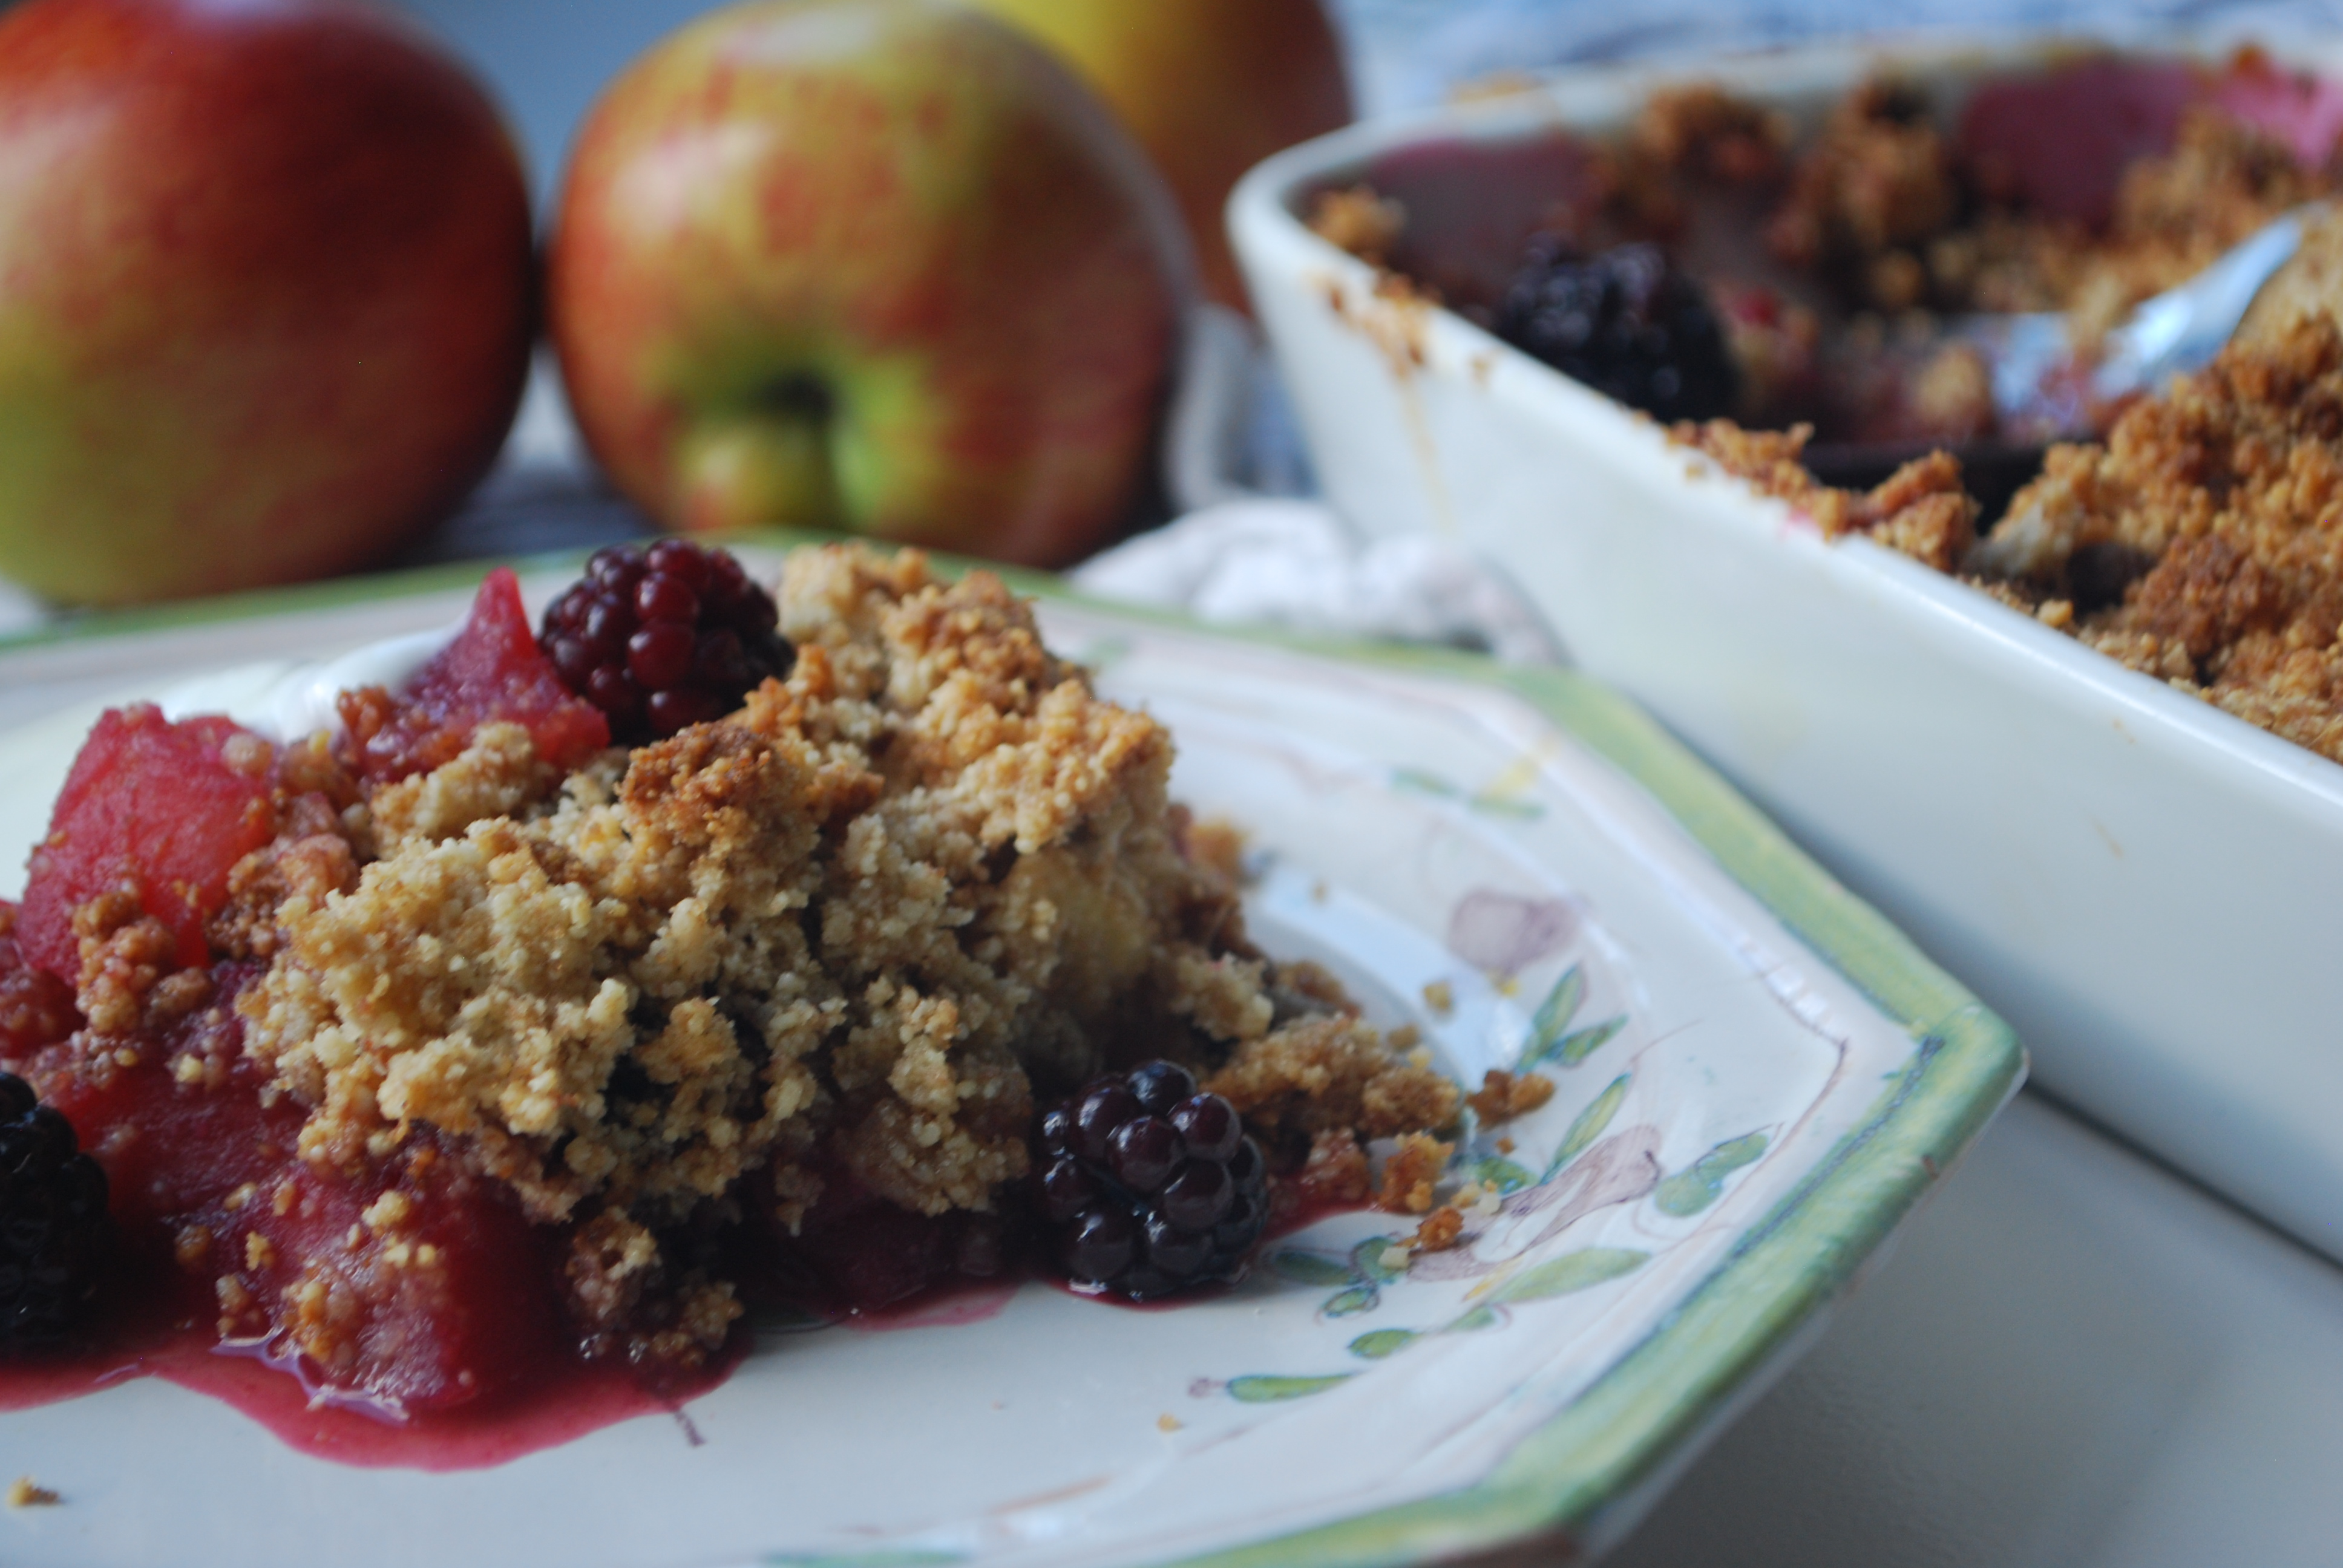 Apple Berry Crumble - Winter Warmers